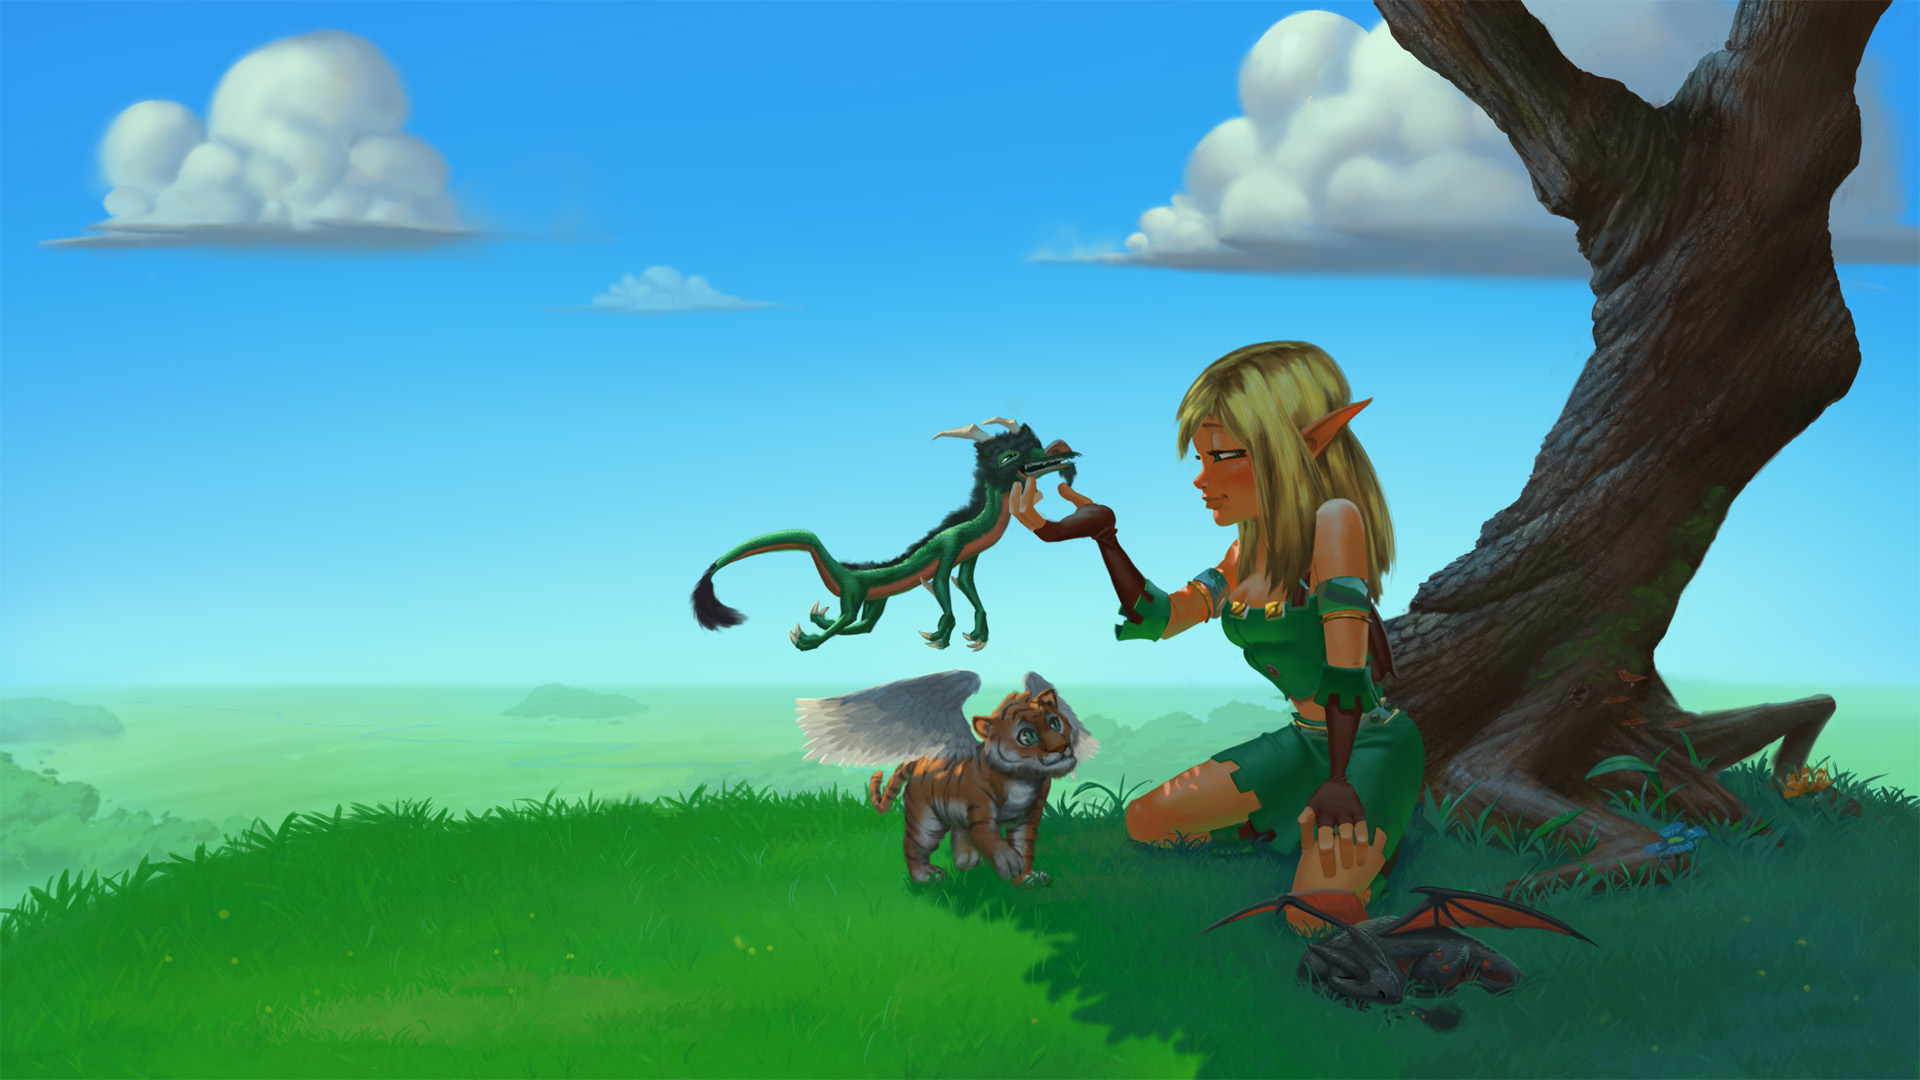 Dungeon Defenders Huntress Wallpaper Dundef_huntresswallpaper